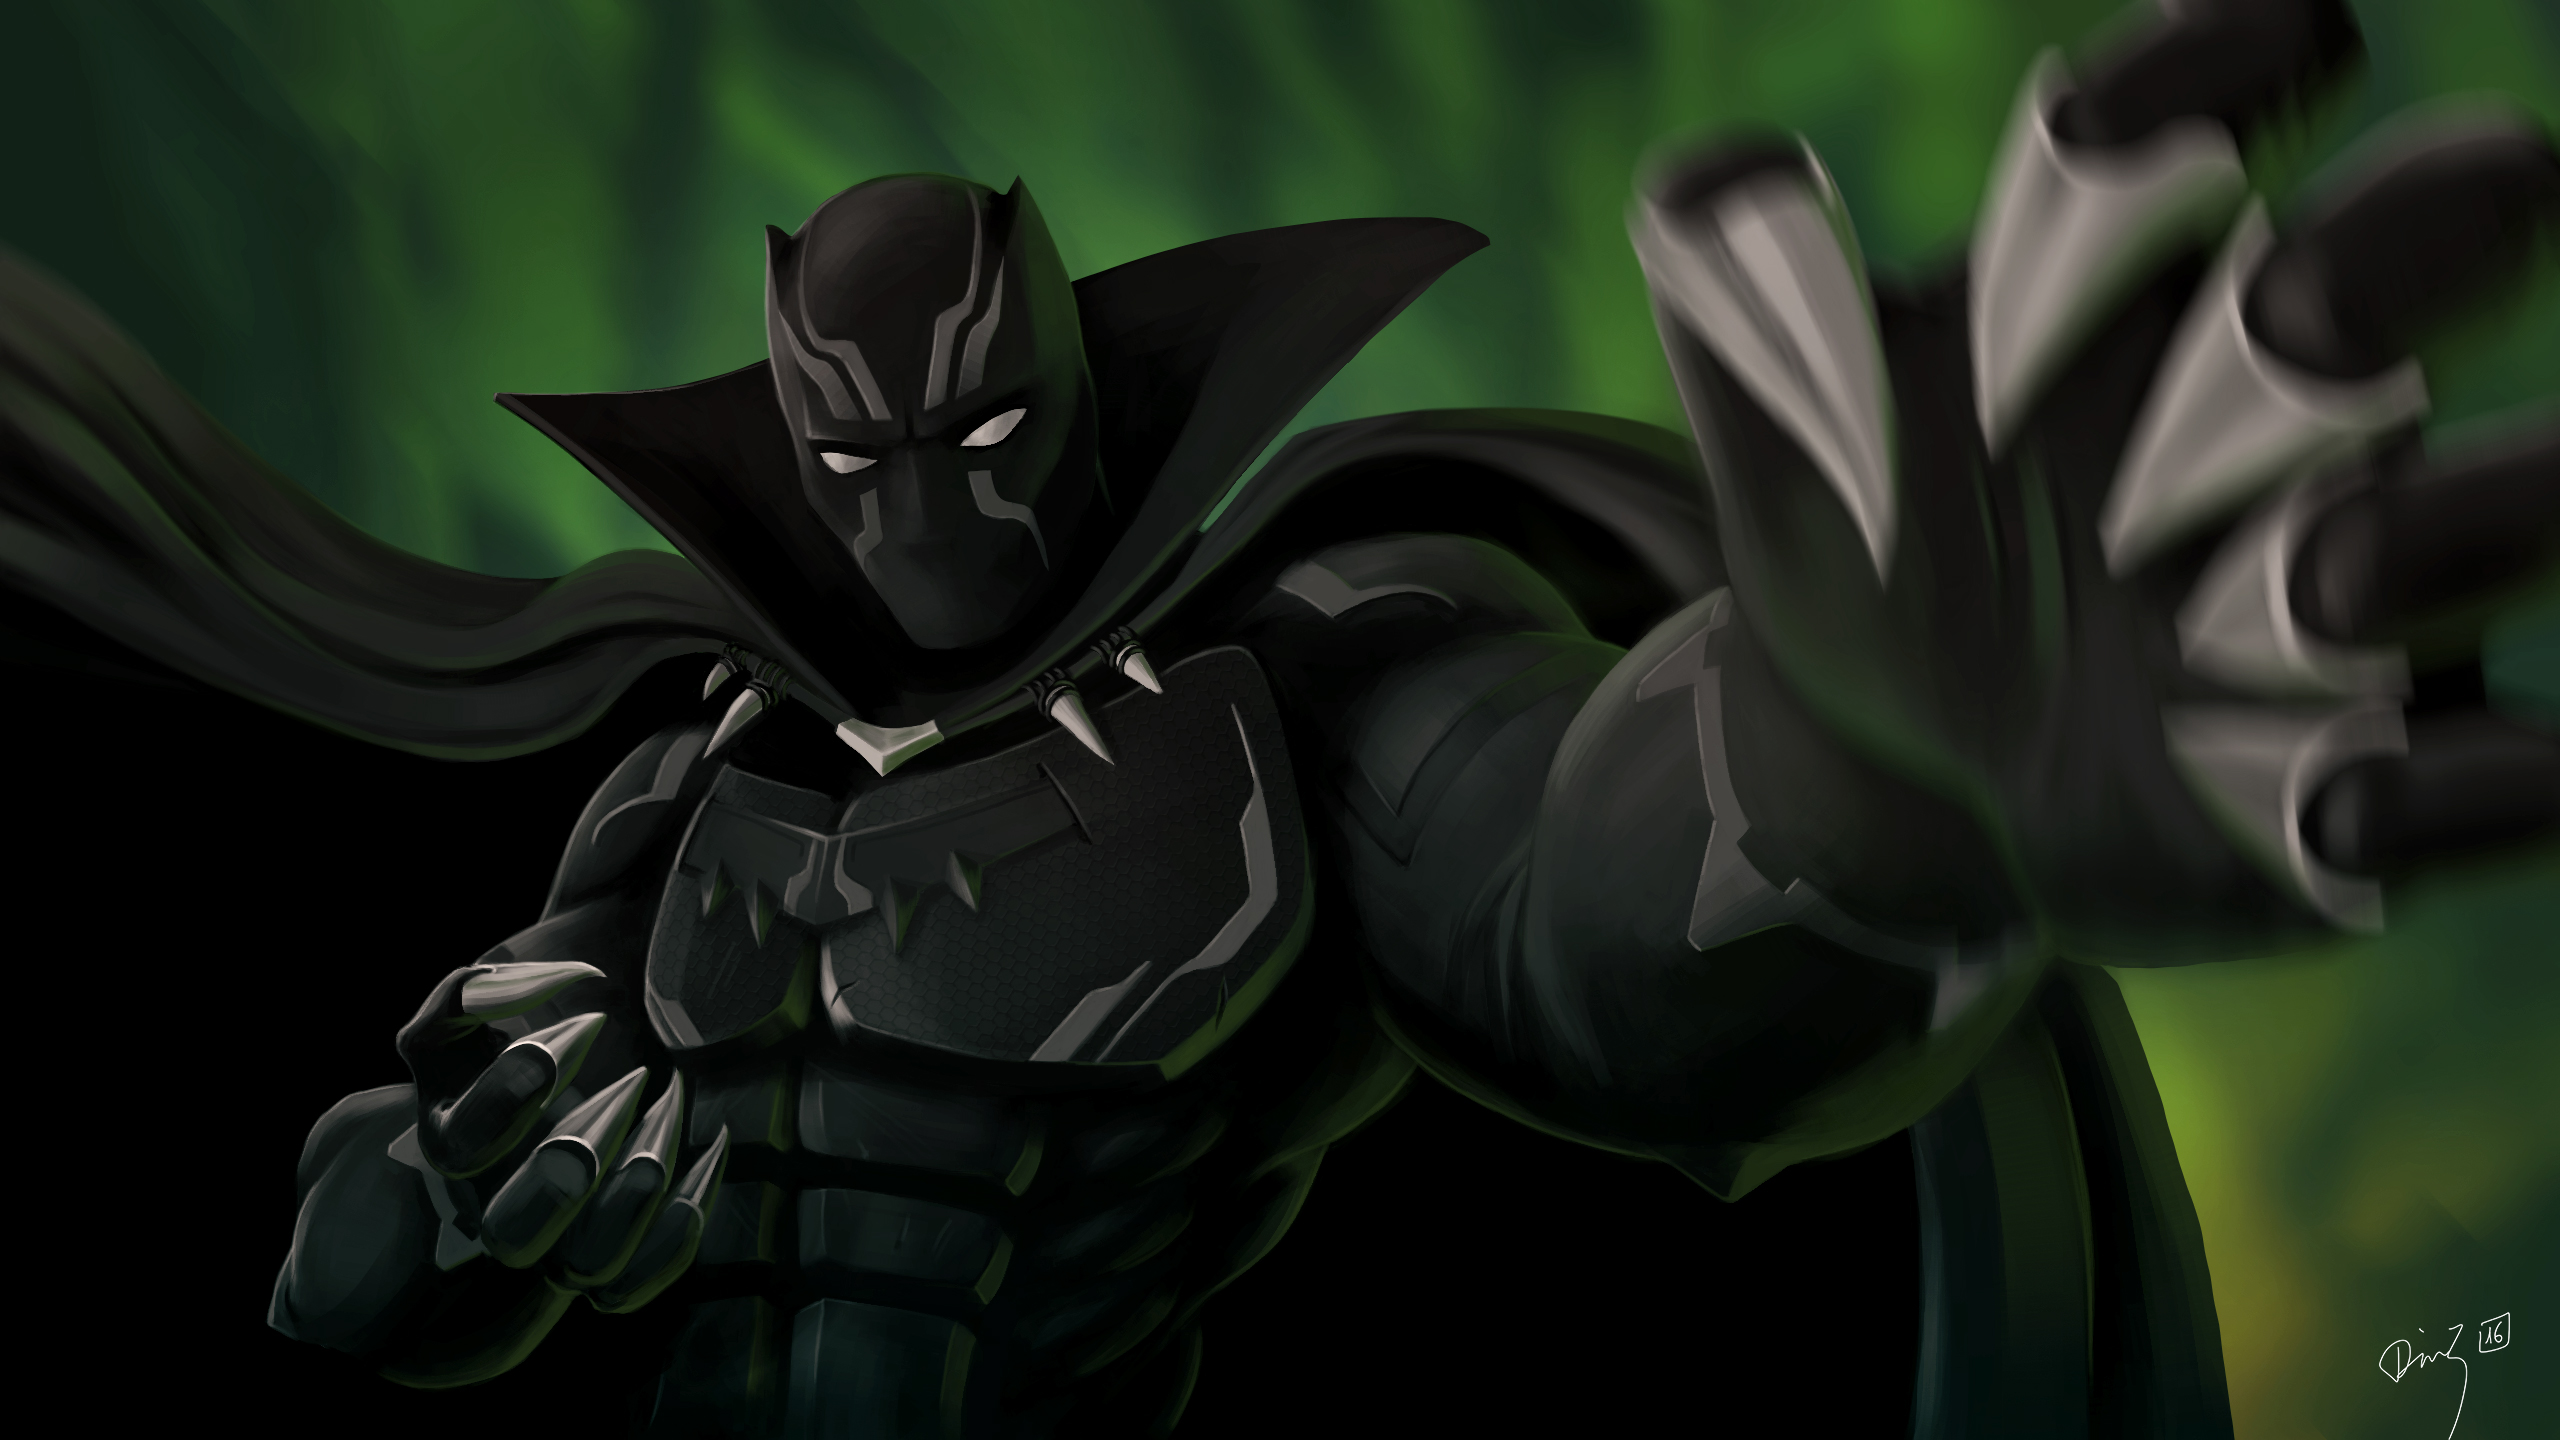 Wakanda King Hd Superheroes 4k Wallpapers Images Backgrounds Photos And Pictures